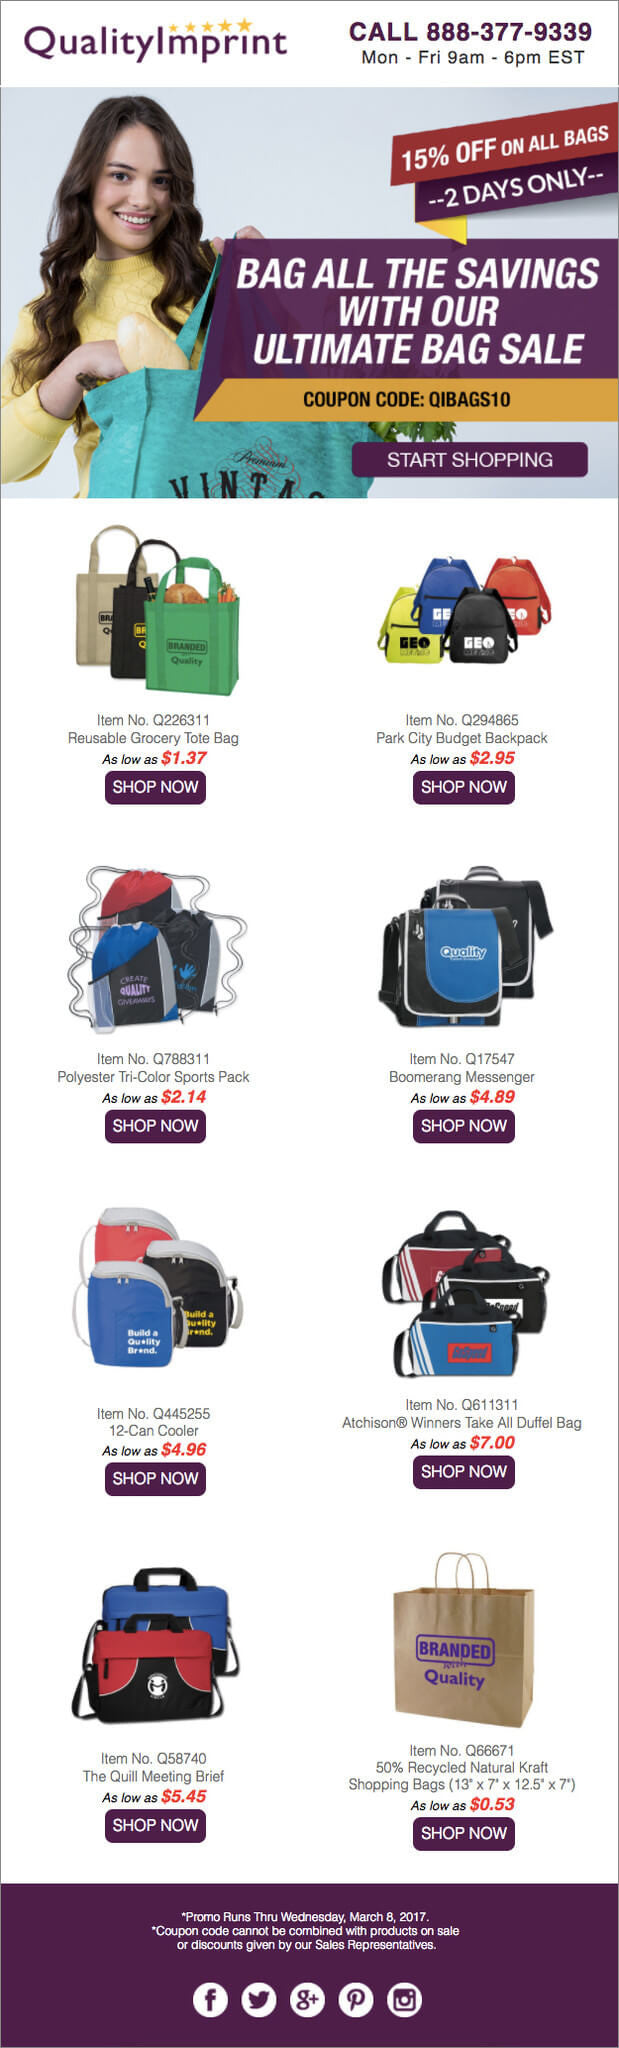 BAG ALL THE SAVINGS WITH OUR ULTIMATE BAG SALE!